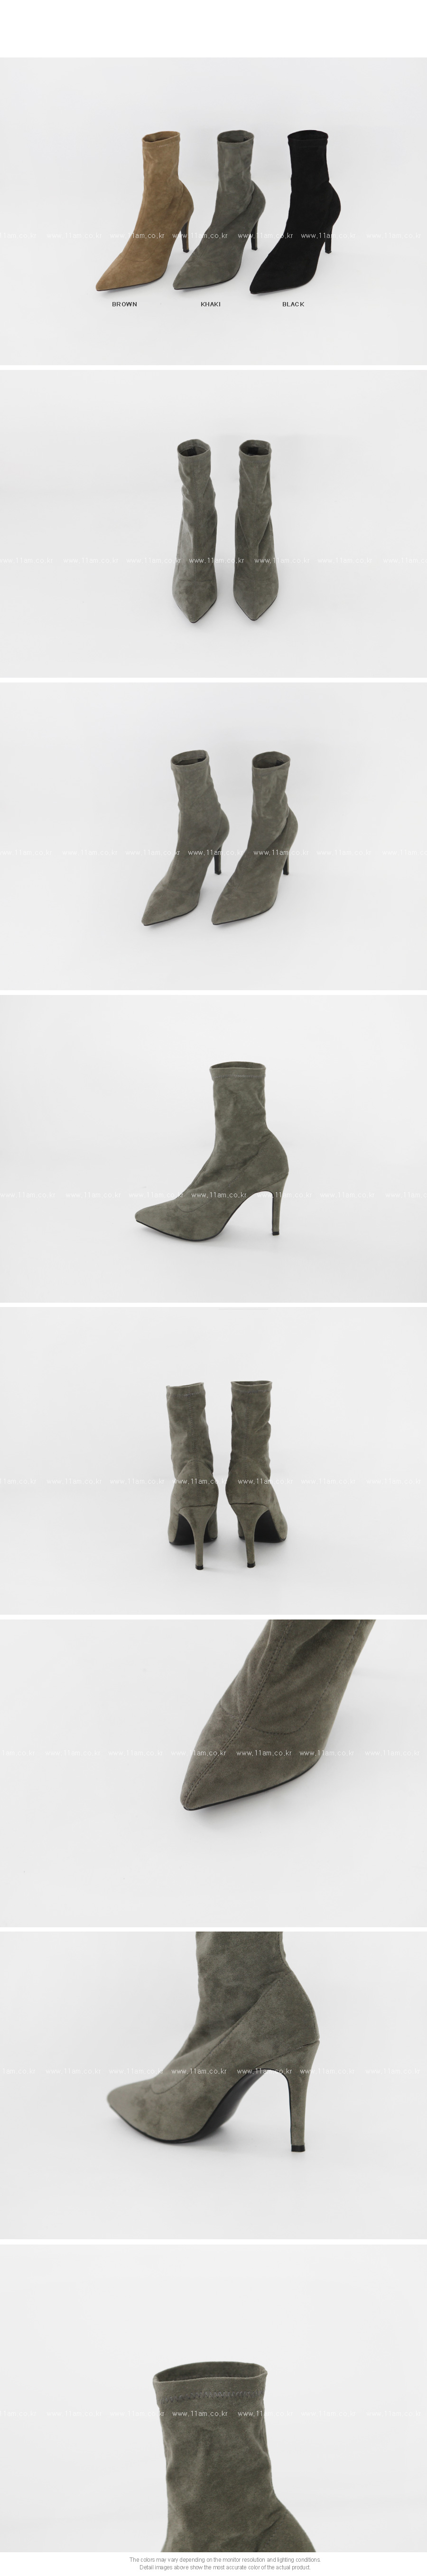 Pointed Toe Heeled Ankle Boots|